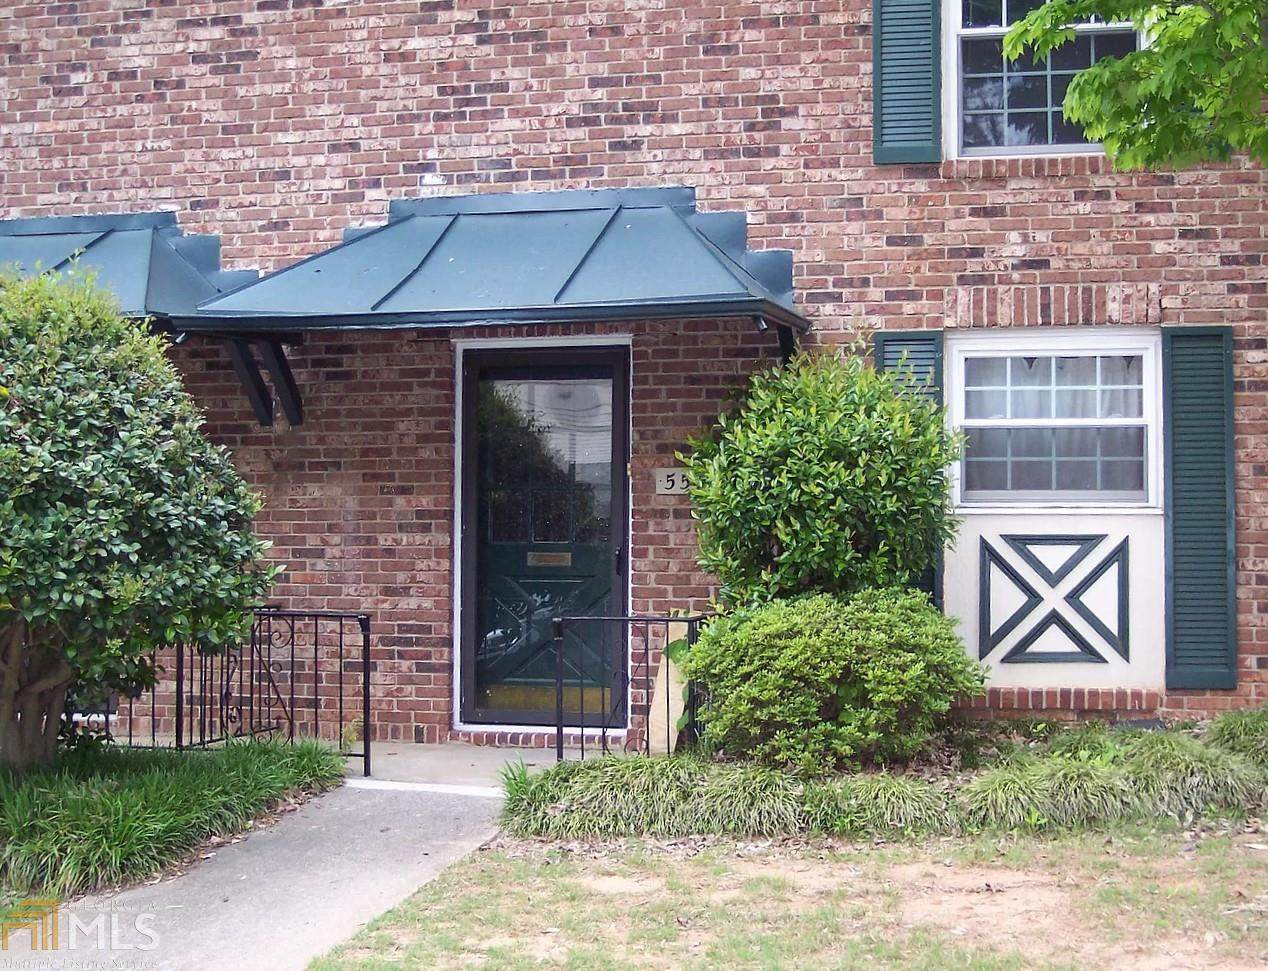 5551 Kingsport Dr - Photo 1